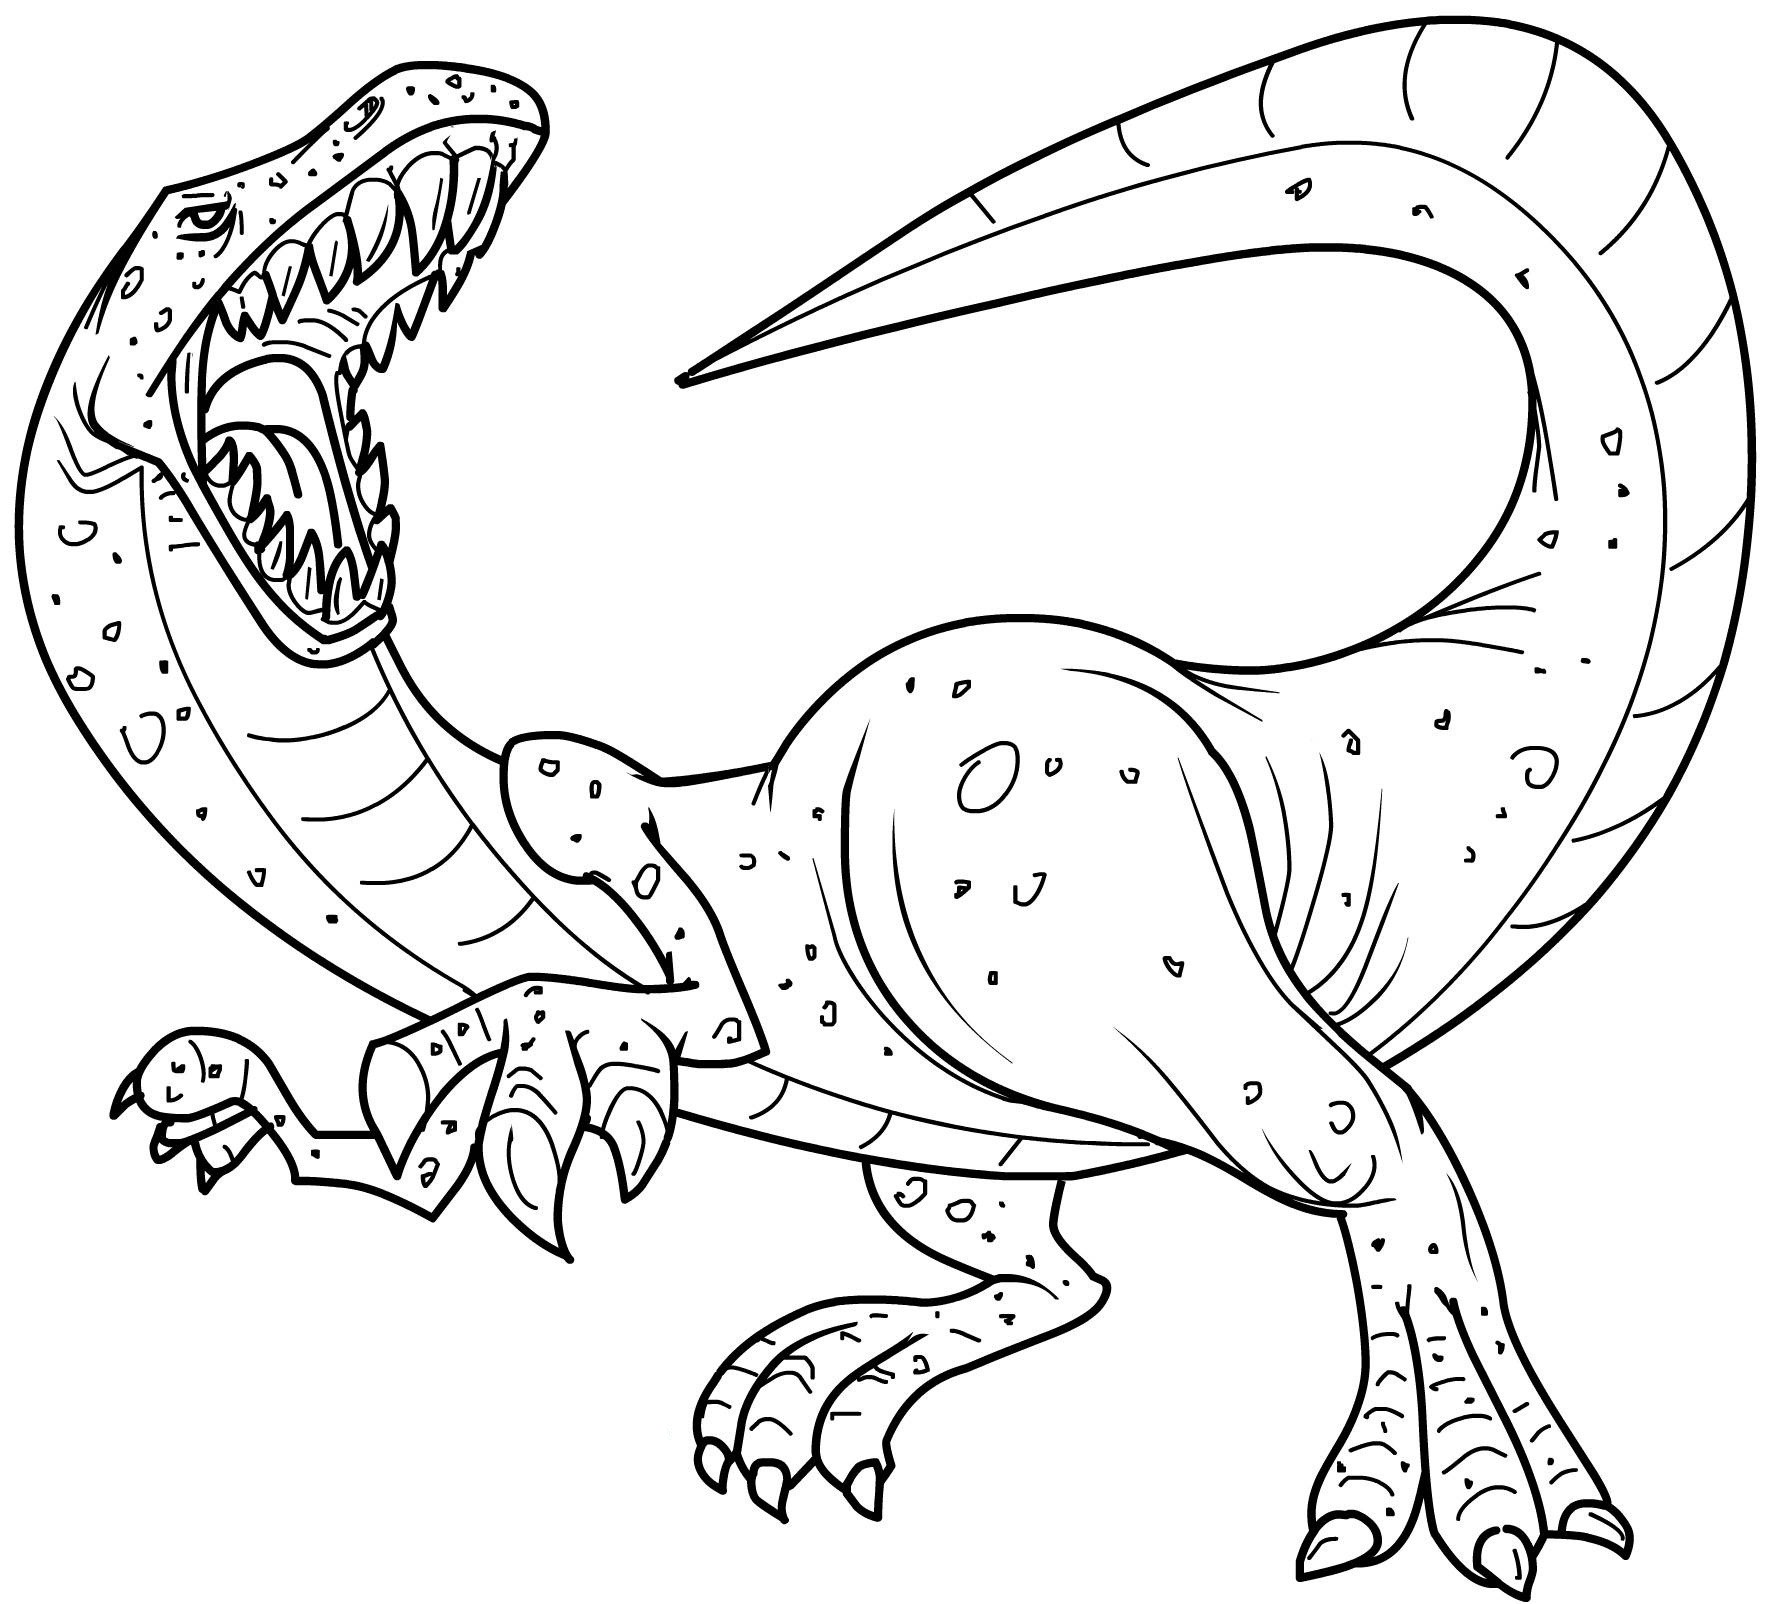 Colouring pages dinosaurs - Dinosaurs Coloring Pages Free Printables